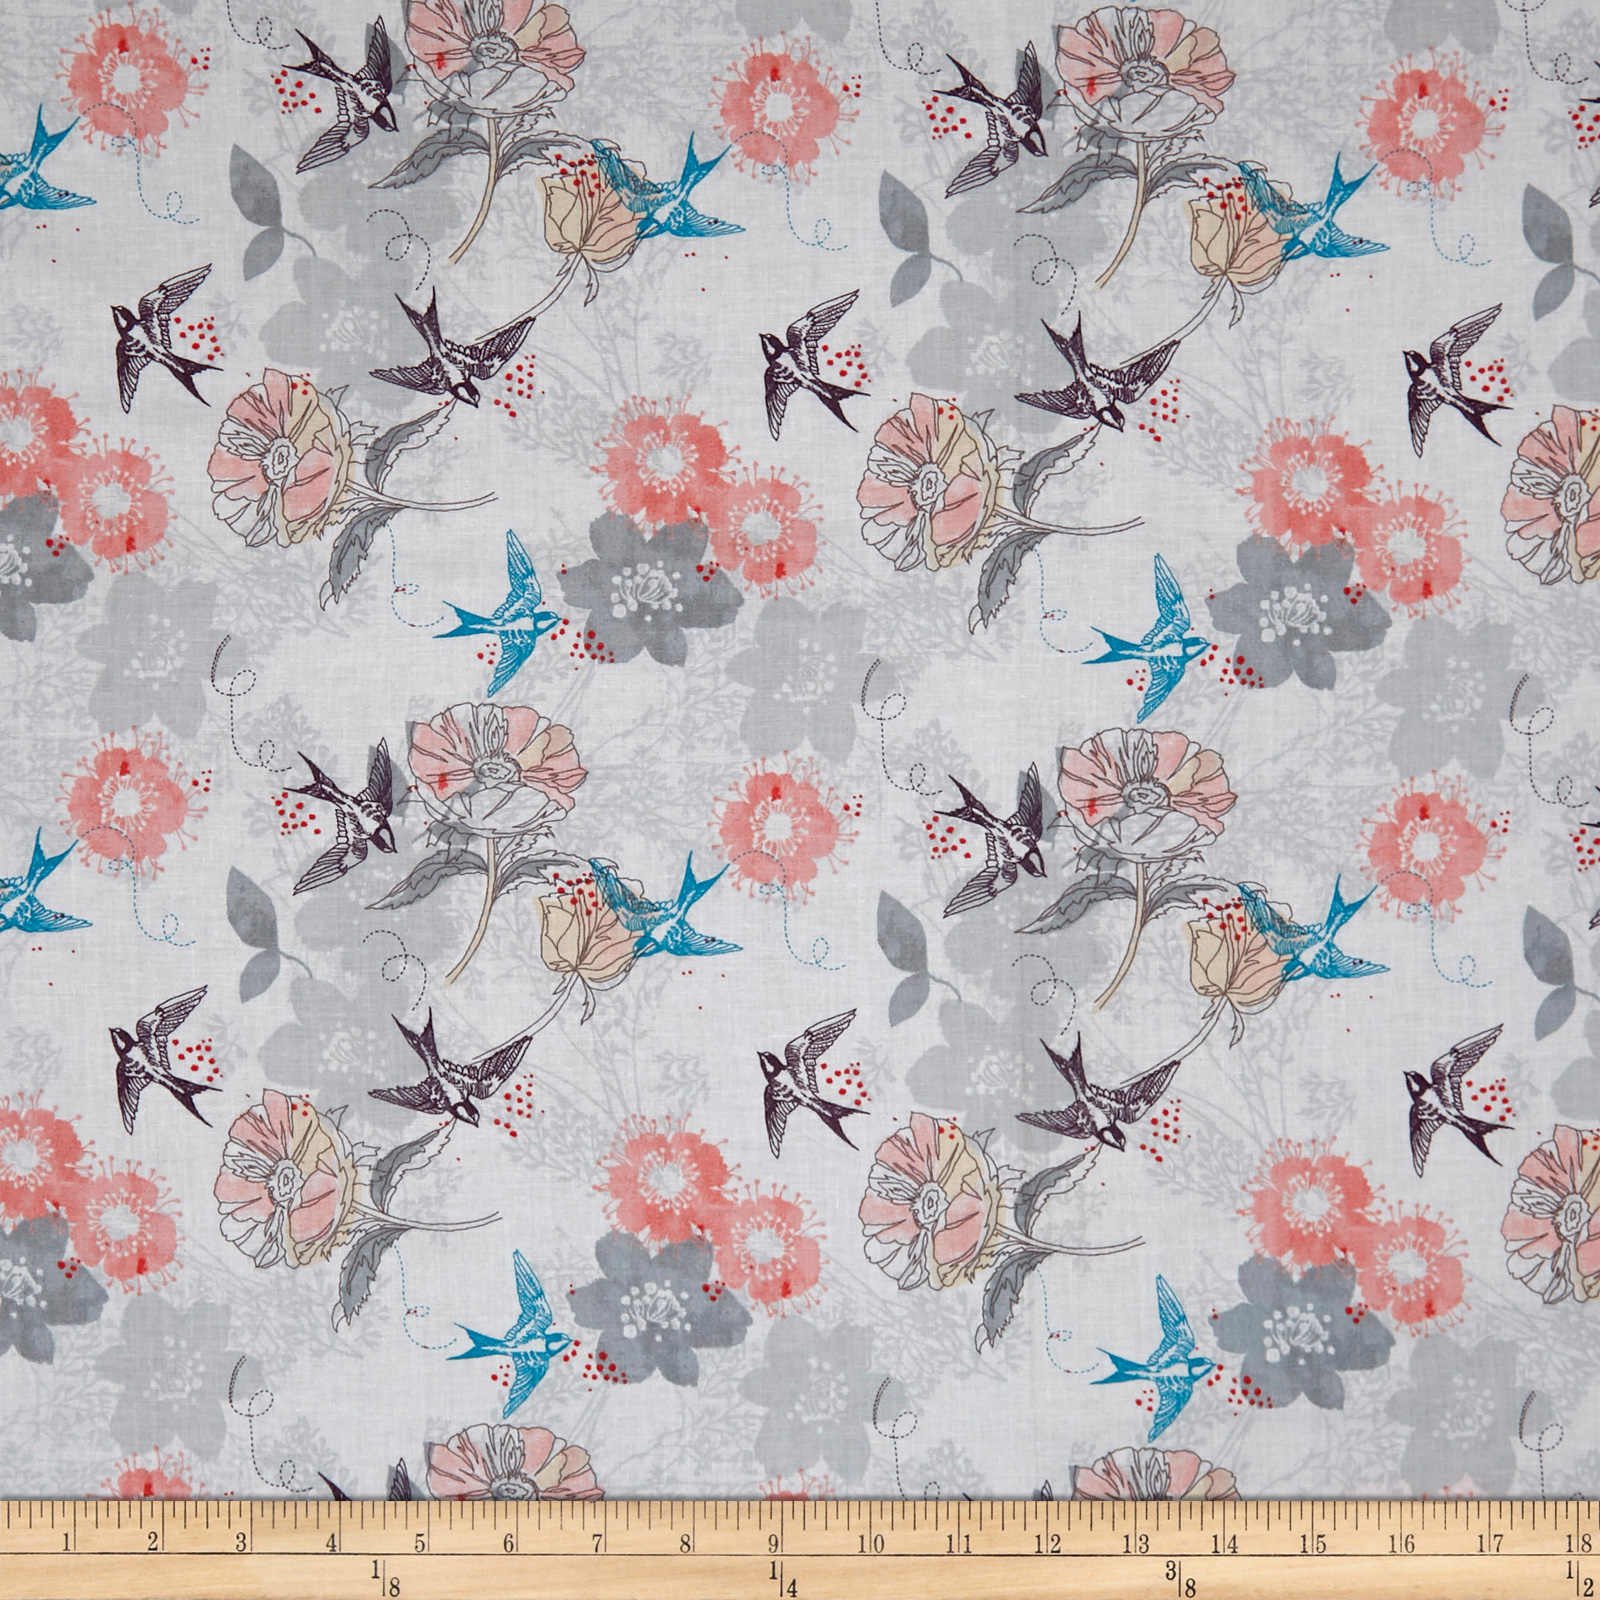 INOpets.com Anything for Pets Parents & Their Pets Marbella Bird Floral White Fabric